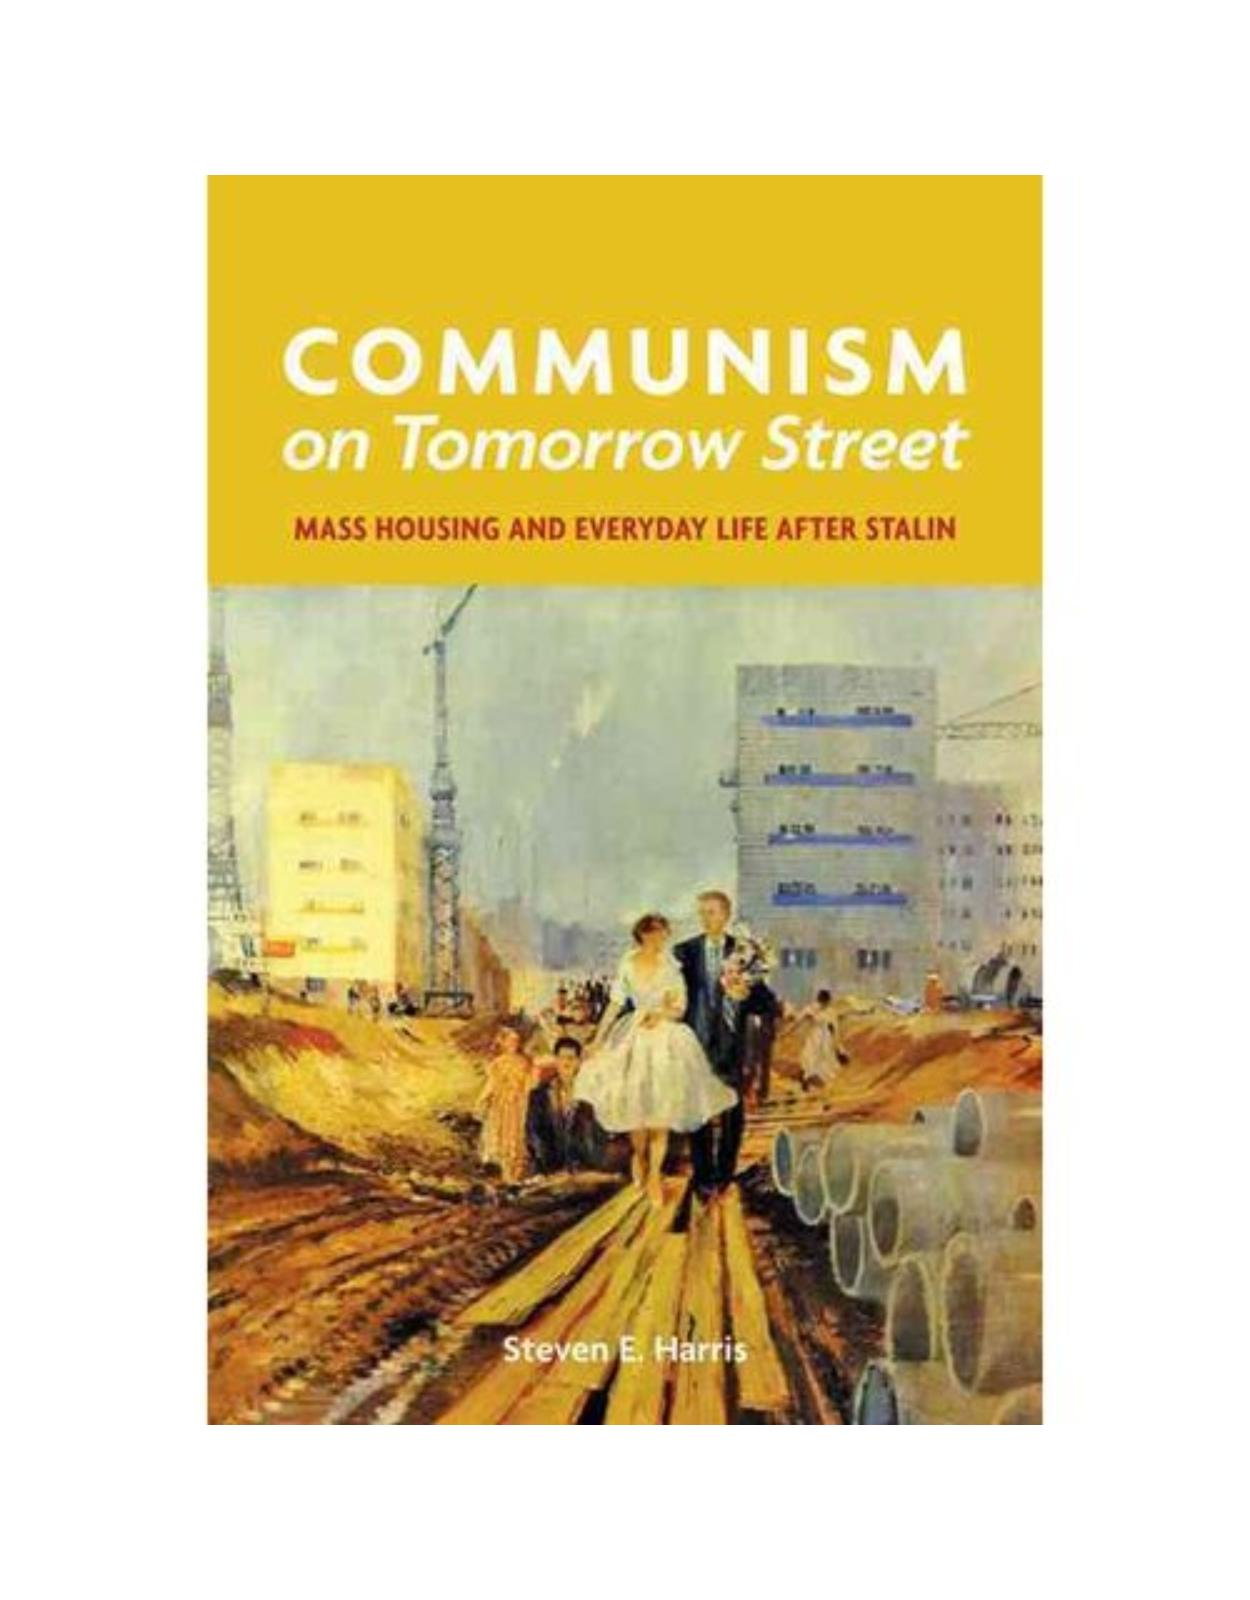 Communism on Tomorrow Street. Mass Housing and Everyday Life after Stalin